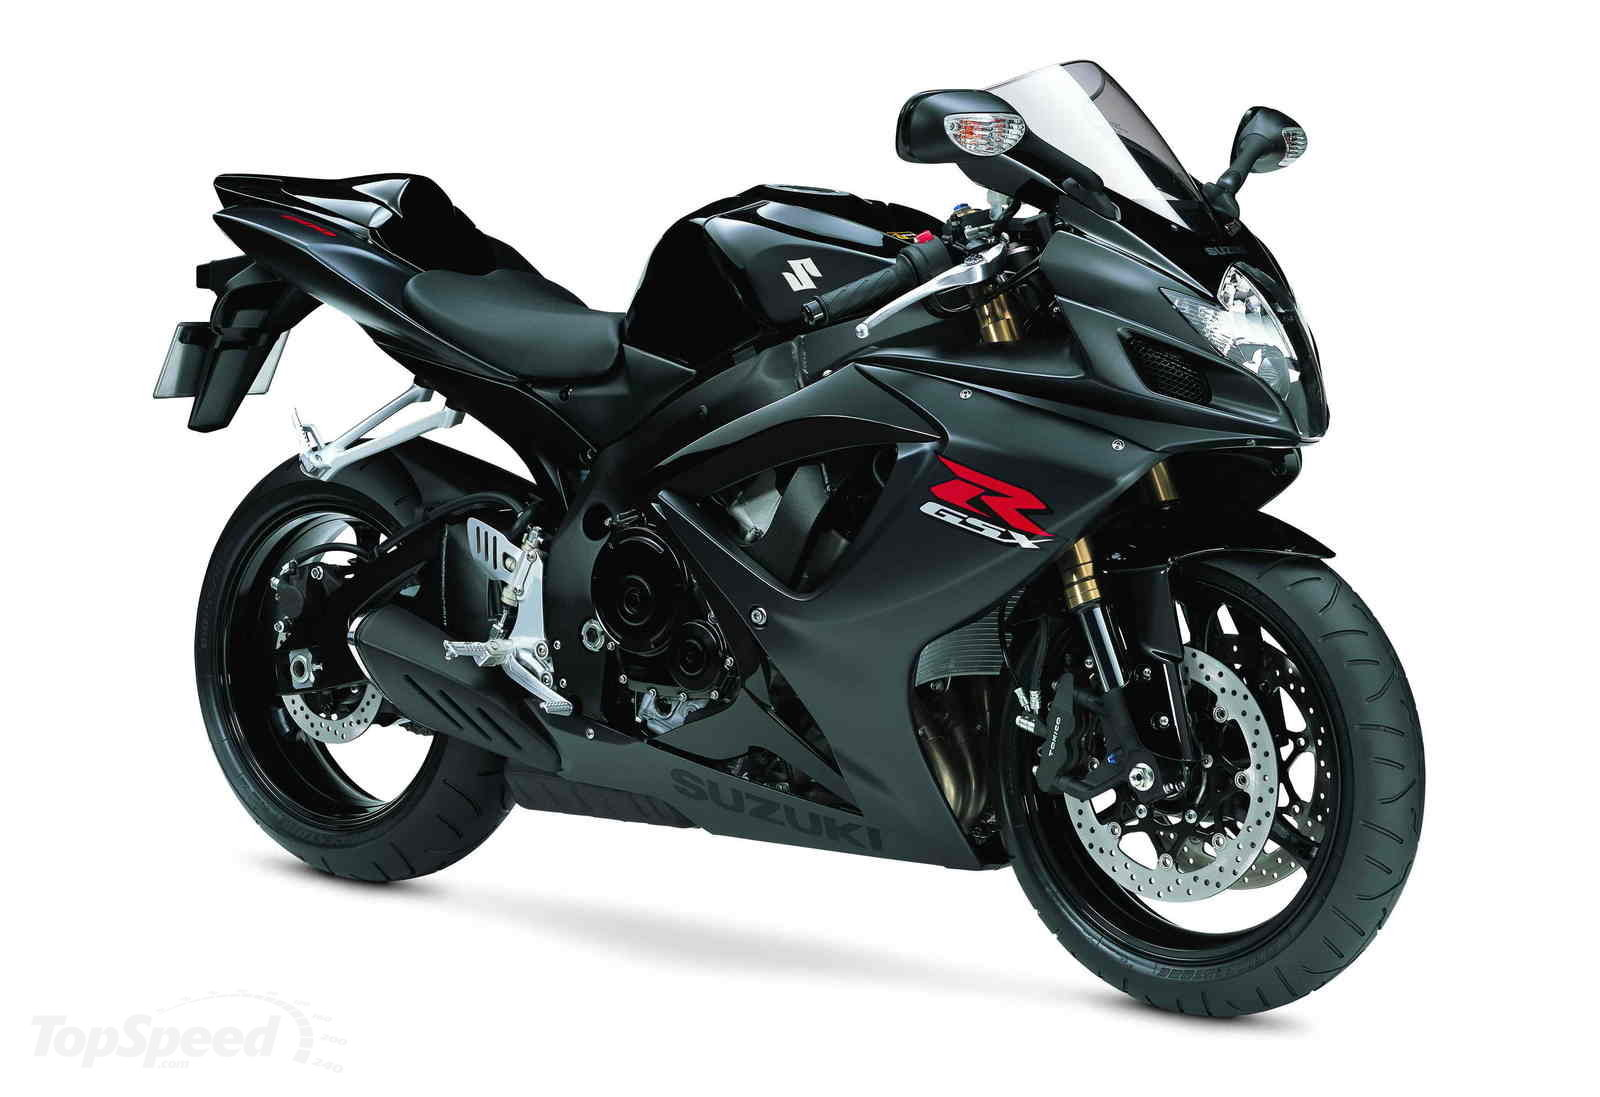 2007 suzuki gsx r 600 pics specs and information. Black Bedroom Furniture Sets. Home Design Ideas